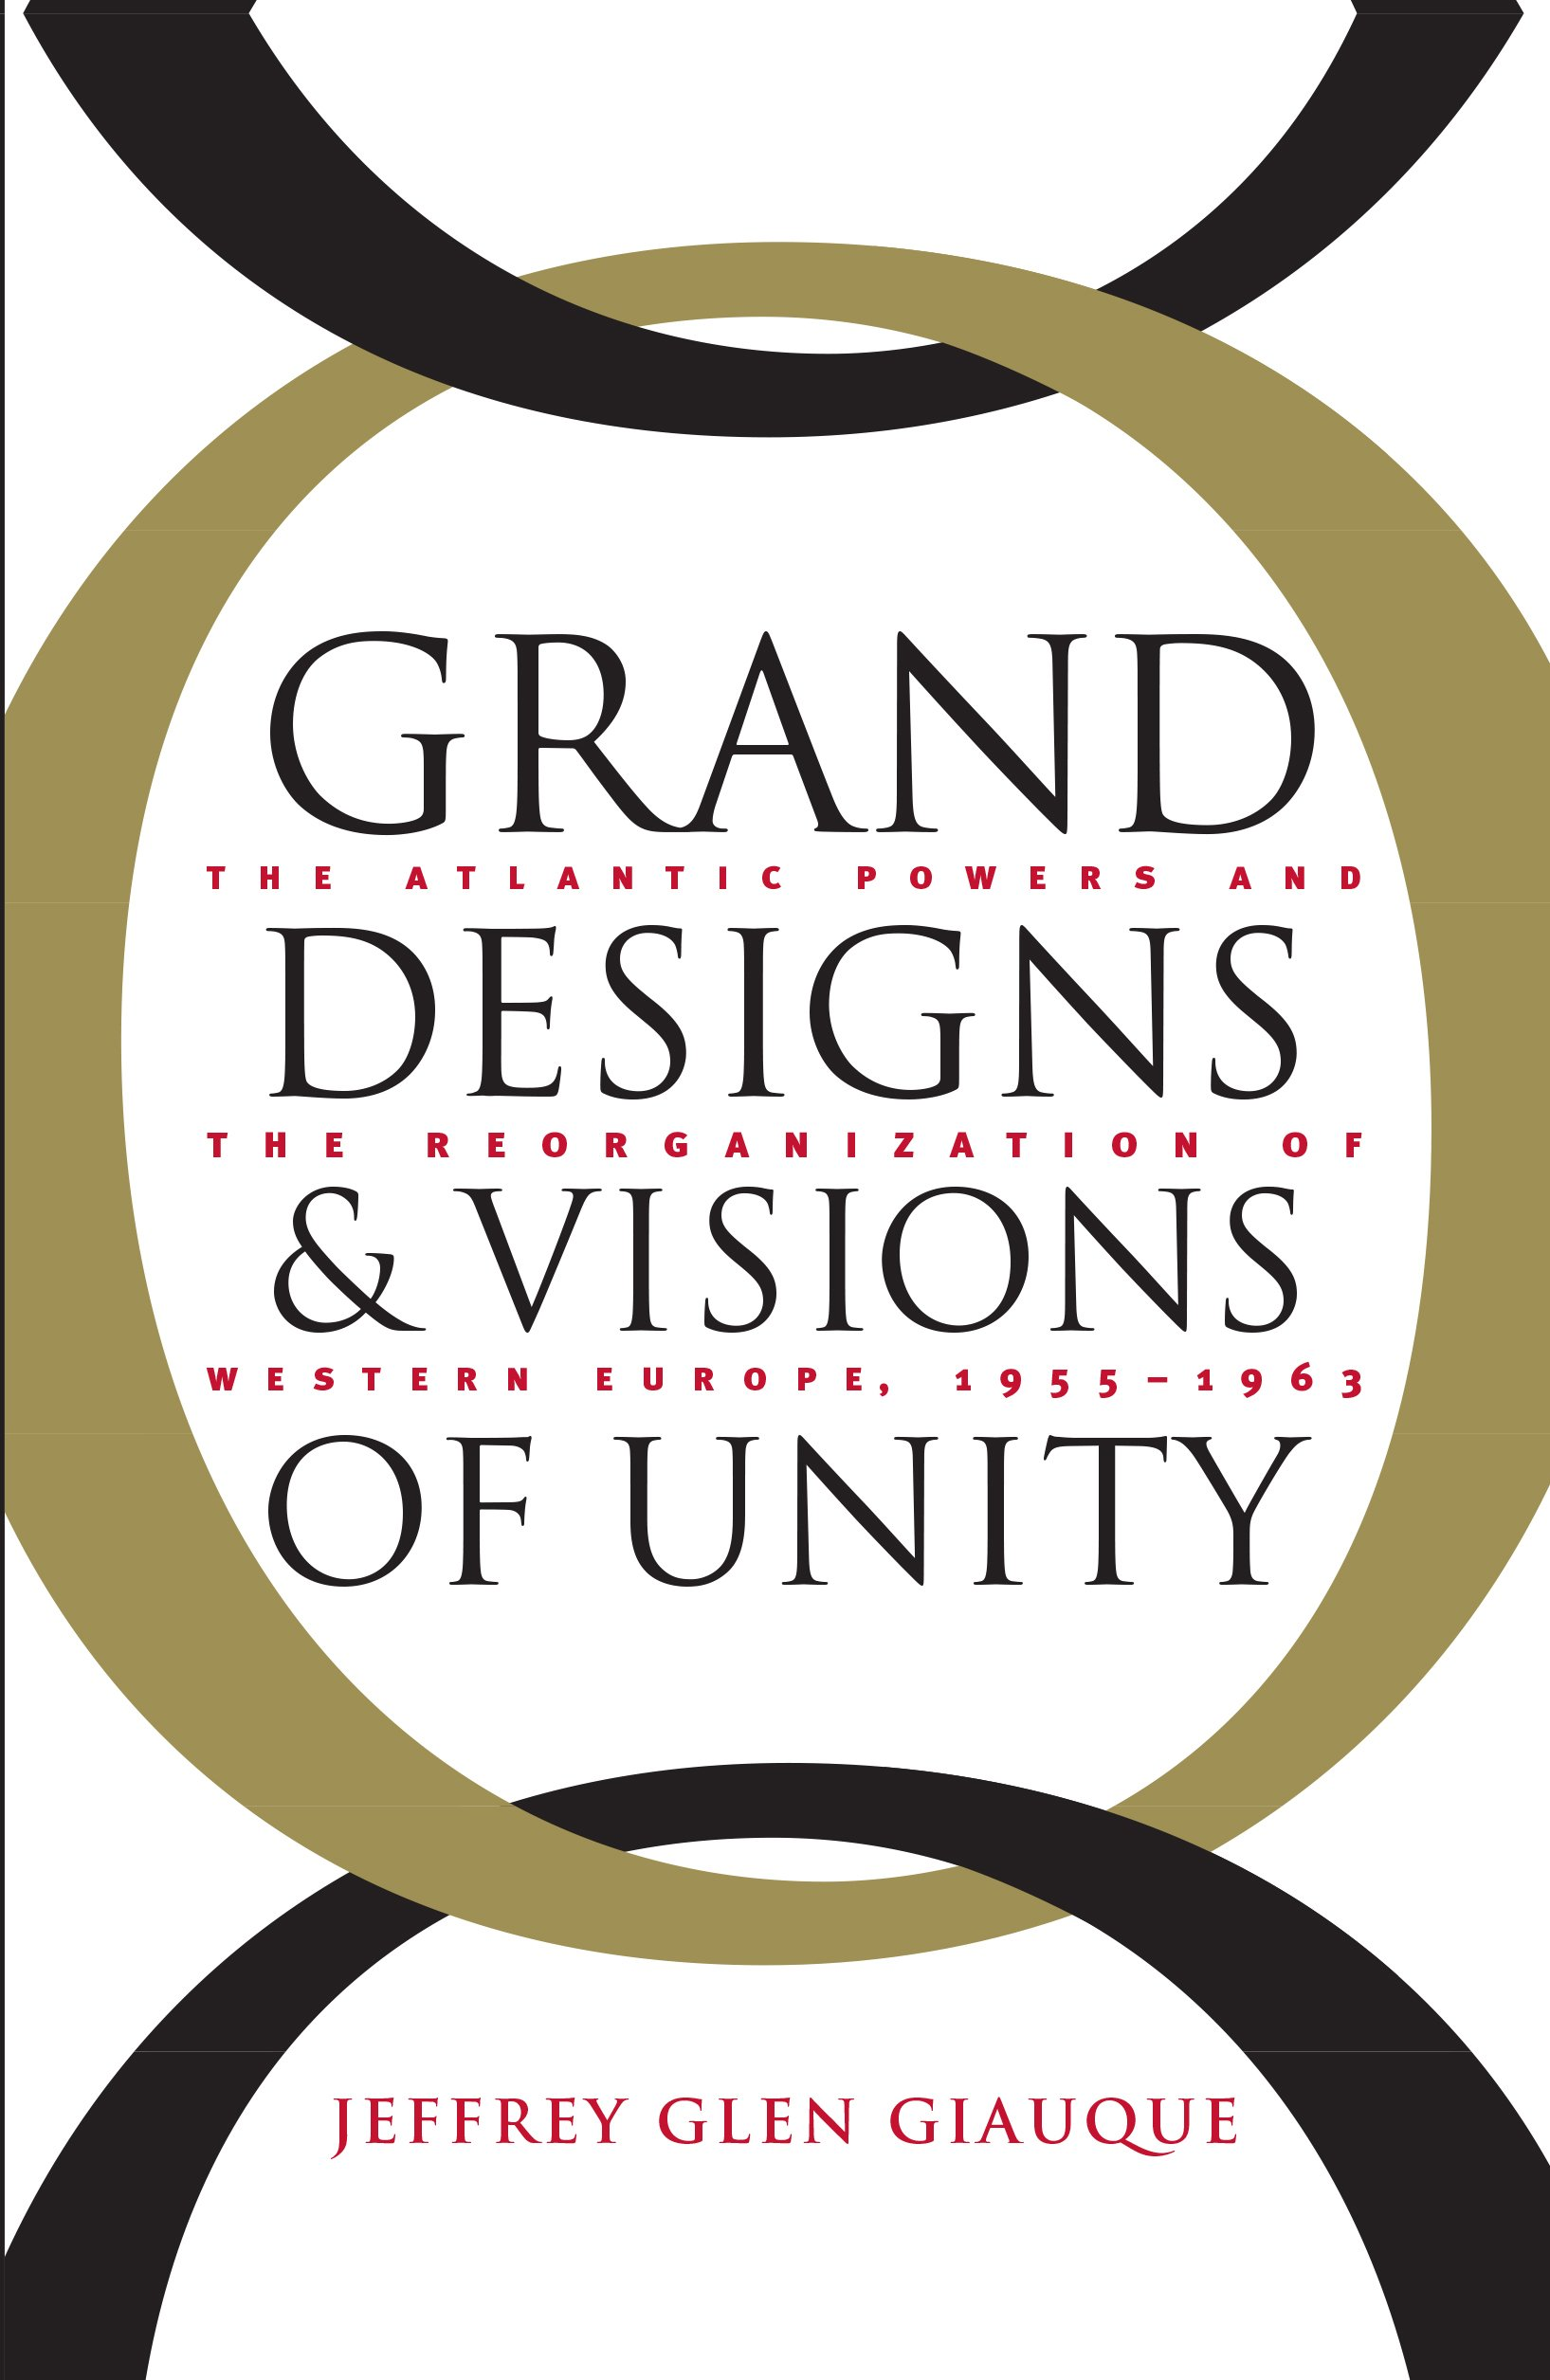 Download Grand Designs and Visions of Unity: The Atlantic Powers and the Reorganization of Western Europe, 1955-1963 PDF